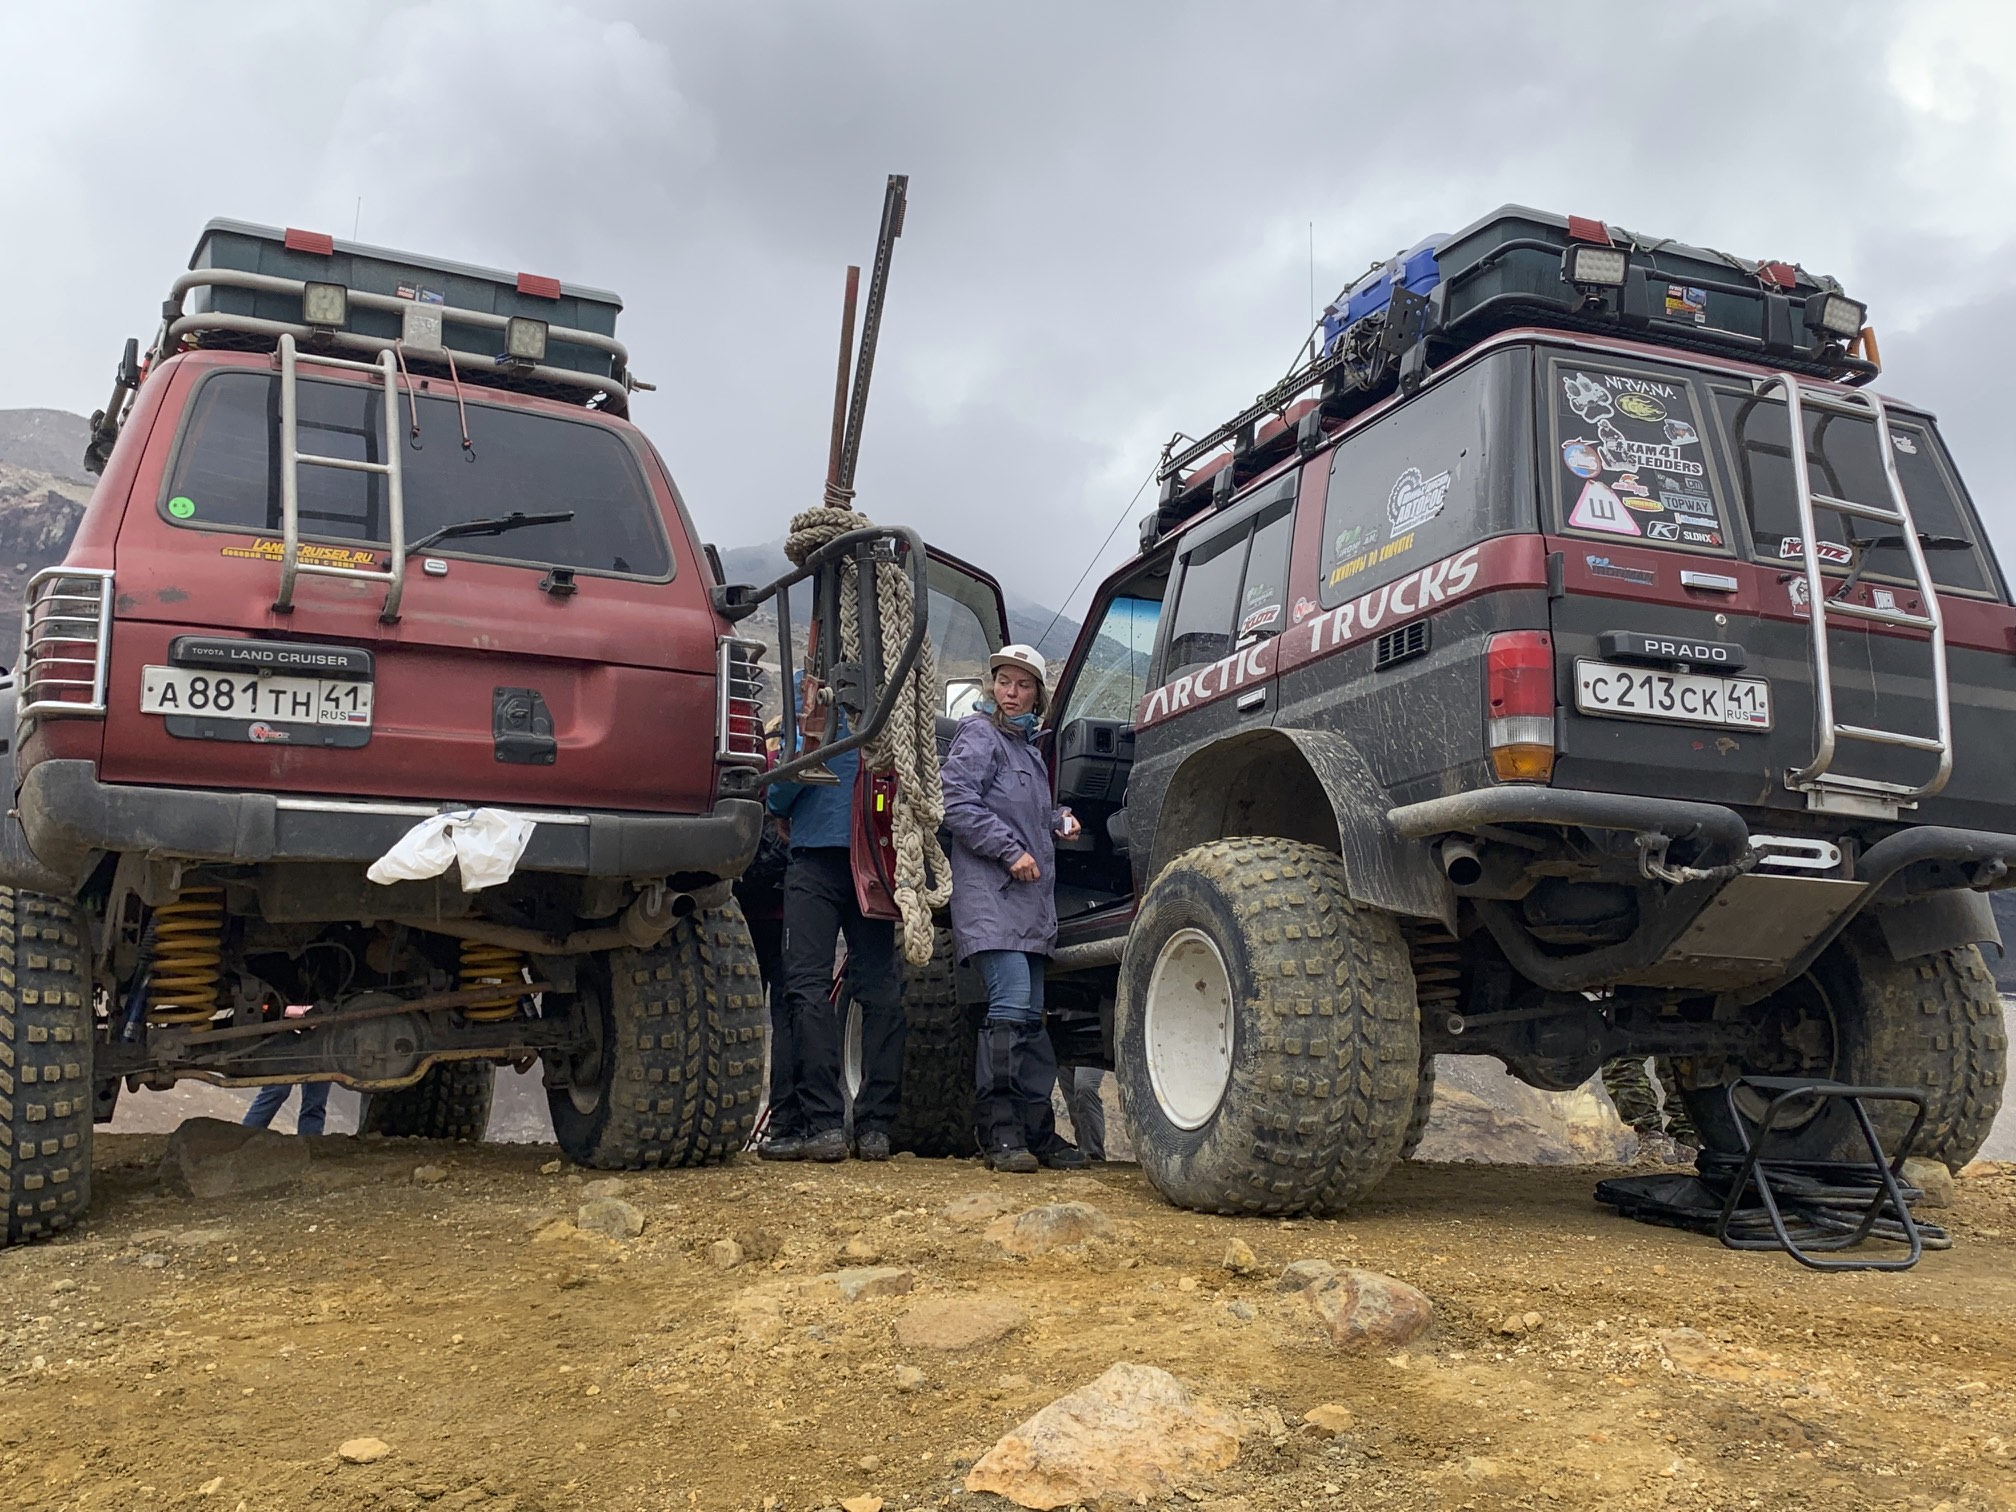 The local operators use these monster trucks to negotiate the rough road from PK to Mutnovsky. There seems to be a monster truck cult in PK as some of them were incredibly large.